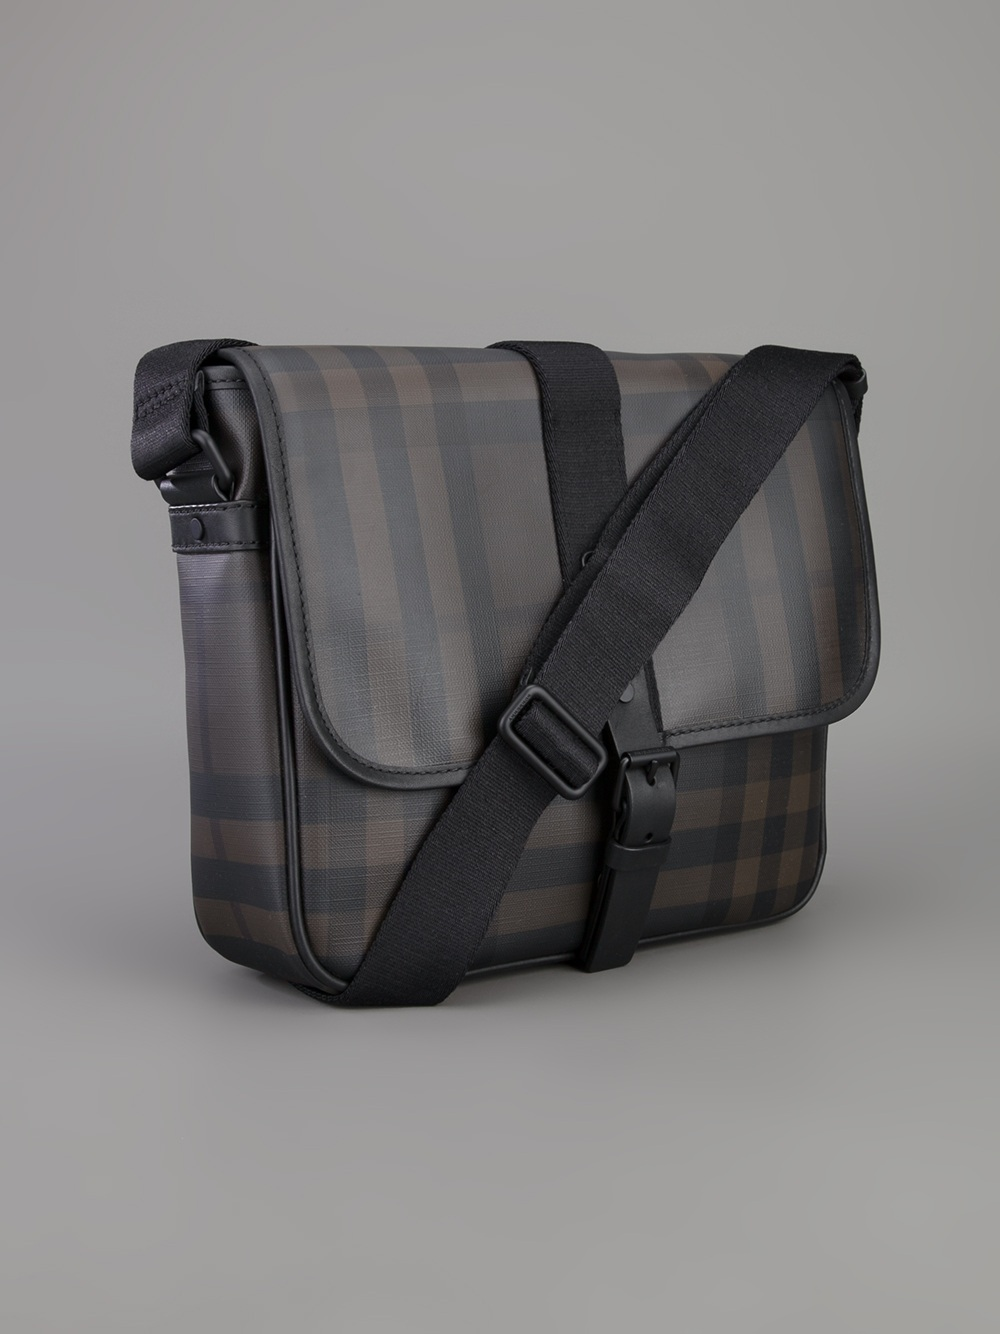 eed29c7c0402 Lyst - Burberry Checked Messenger Bag in Black for Men